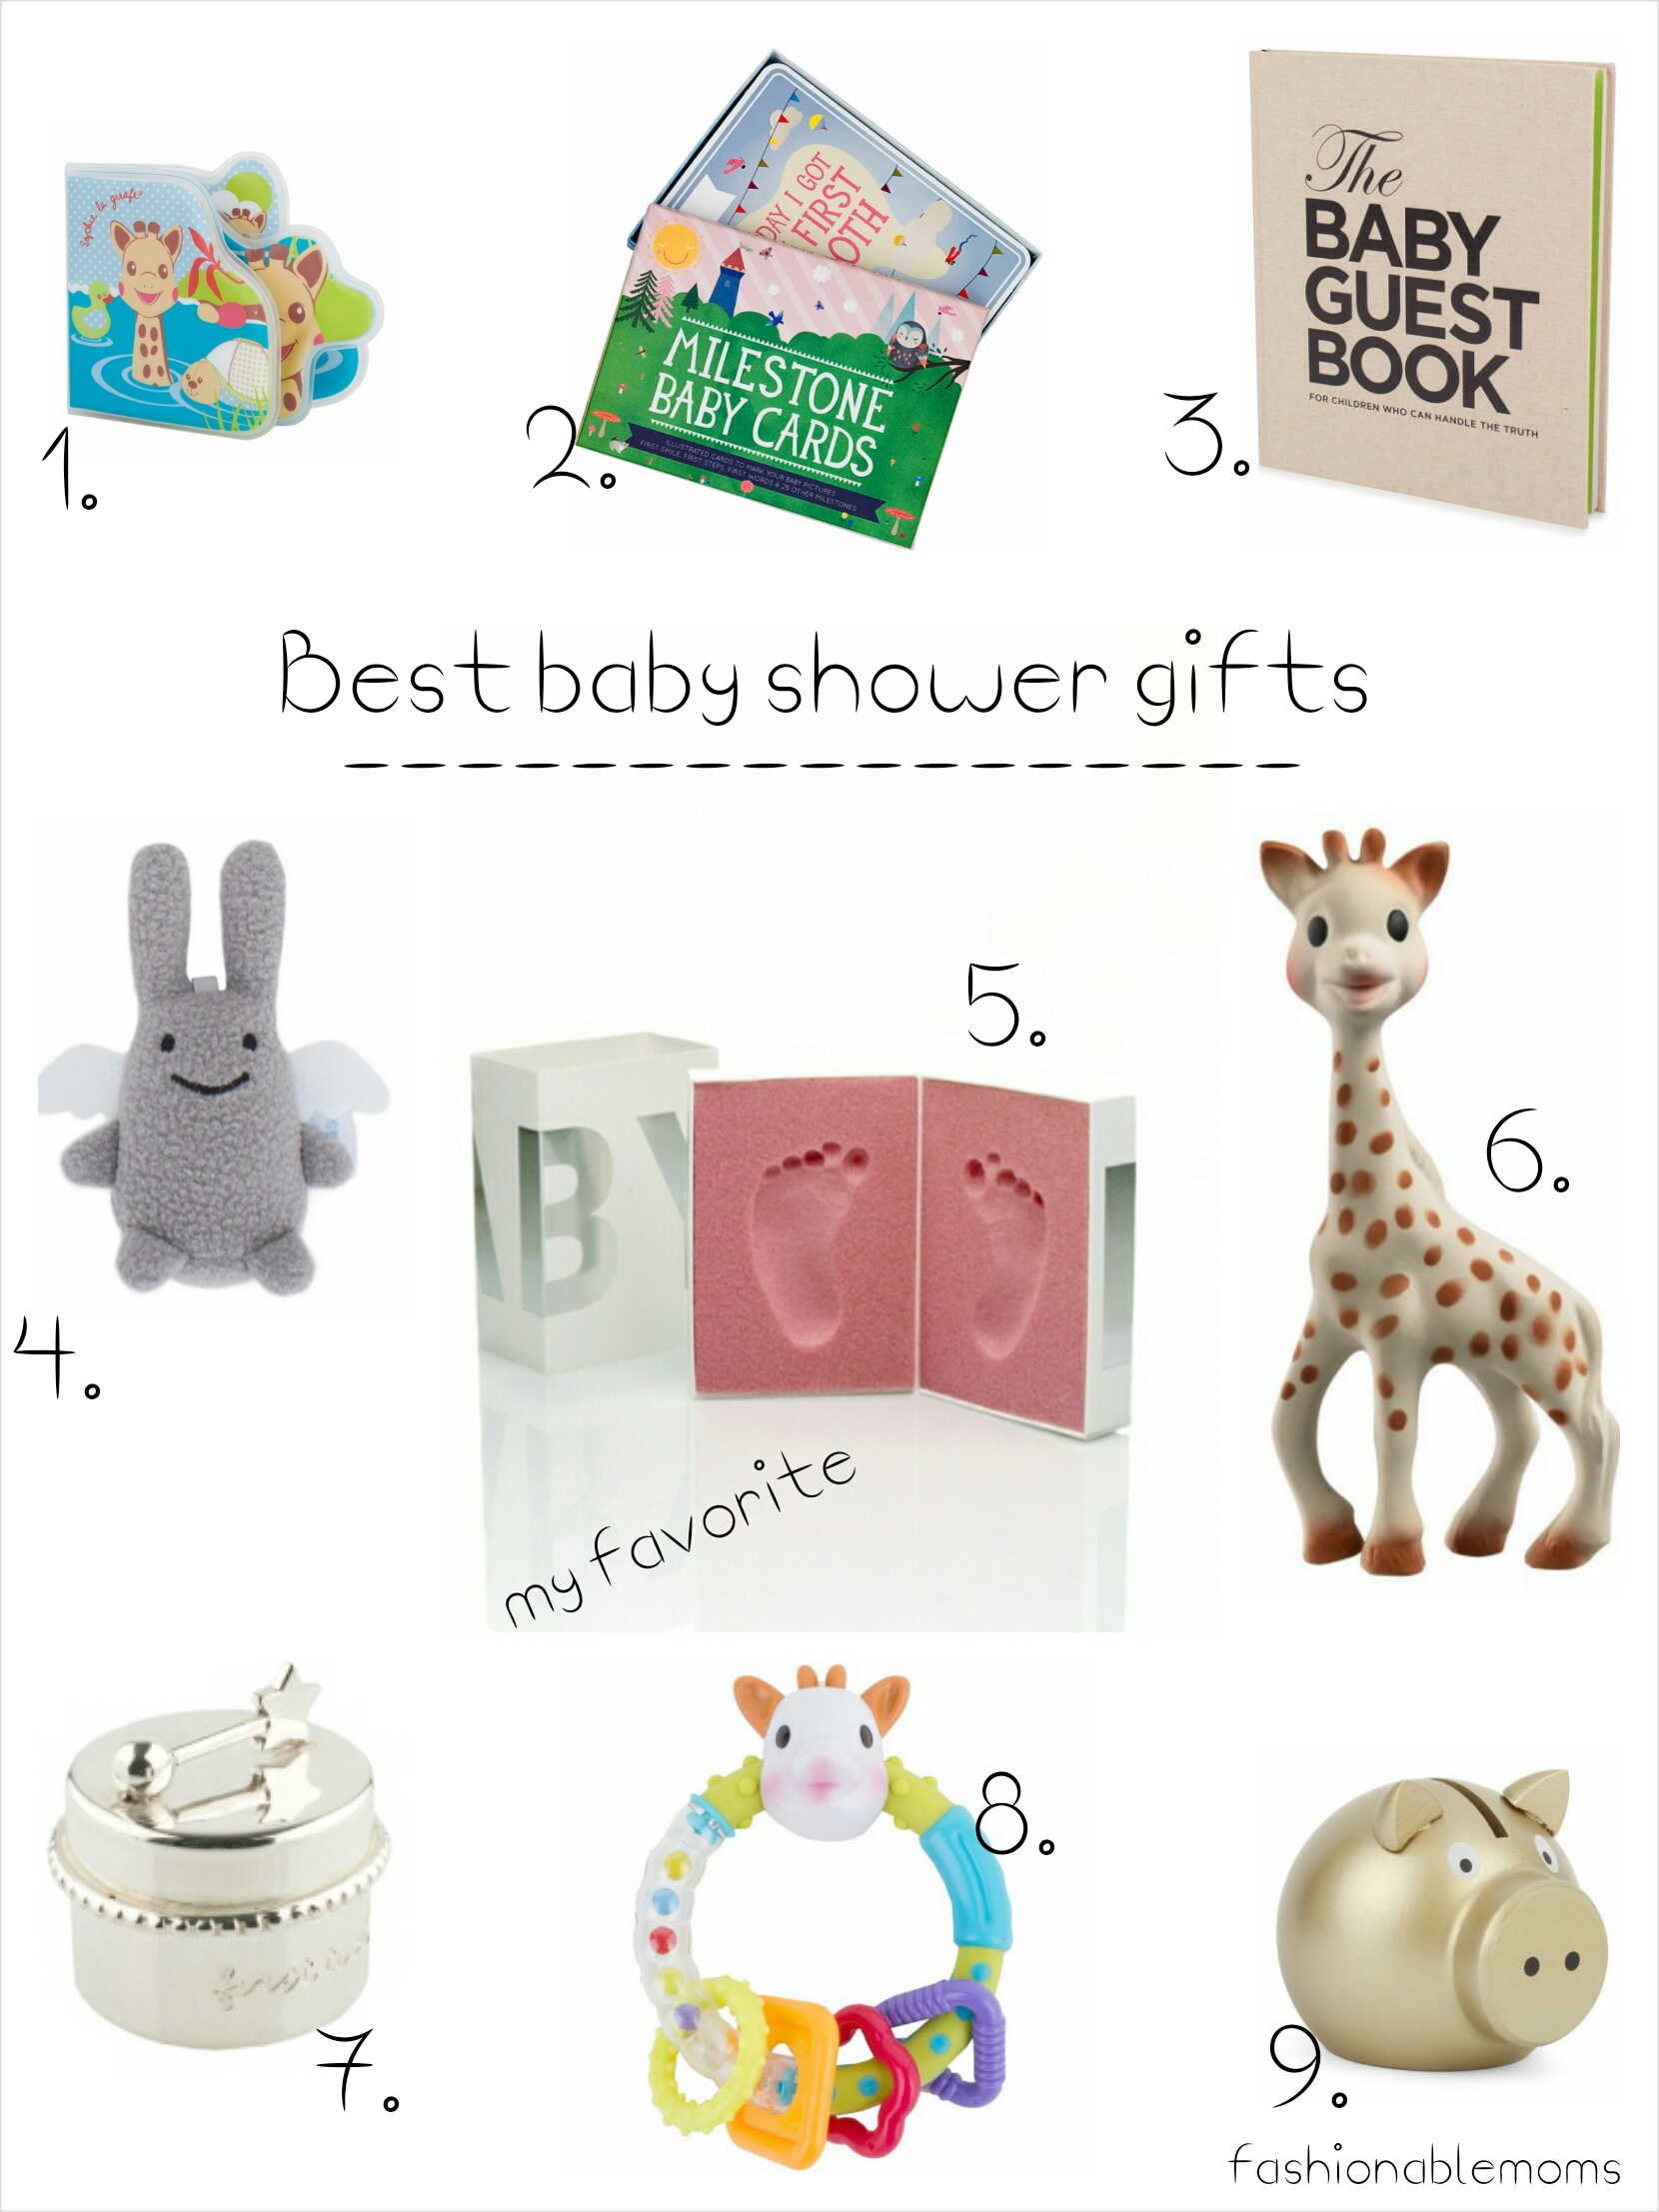 Best Wedding Gift List London : Kids: The best baby shower gifts fashionablemoms